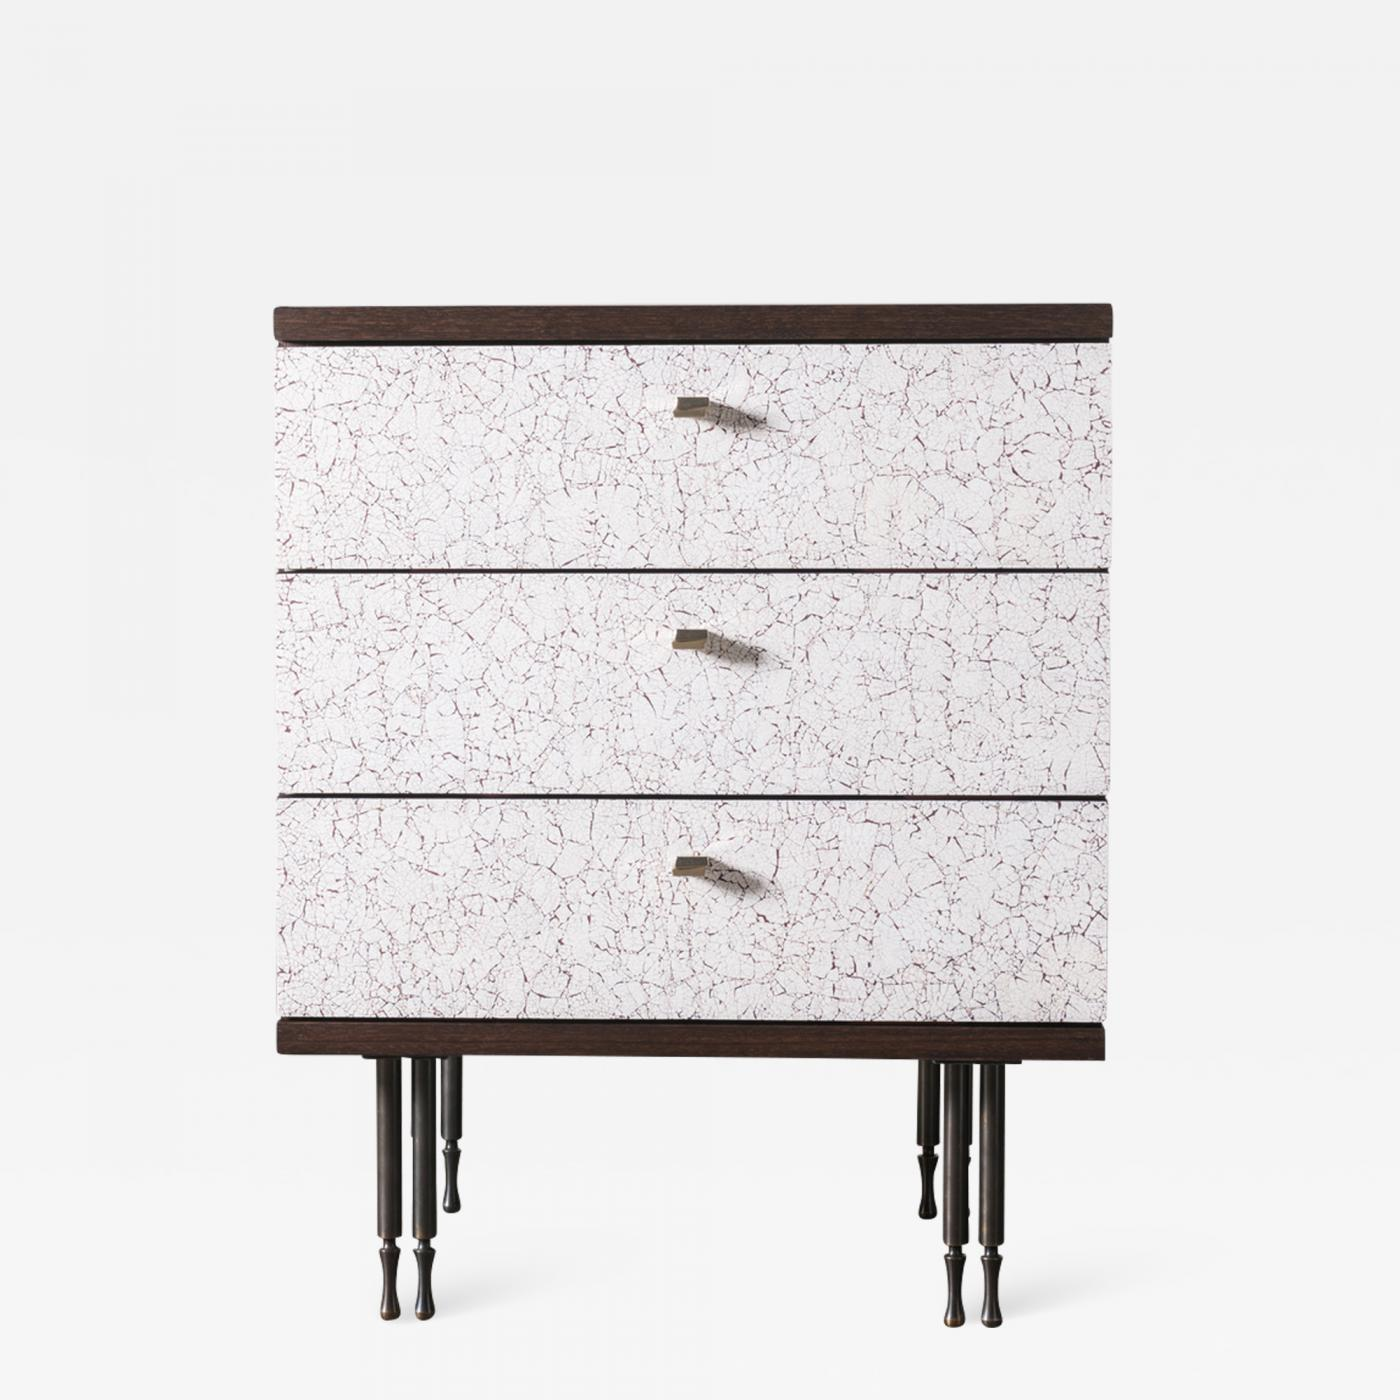 Pair of Wheeler Nightstands, Designed & Made by Andy Messenger